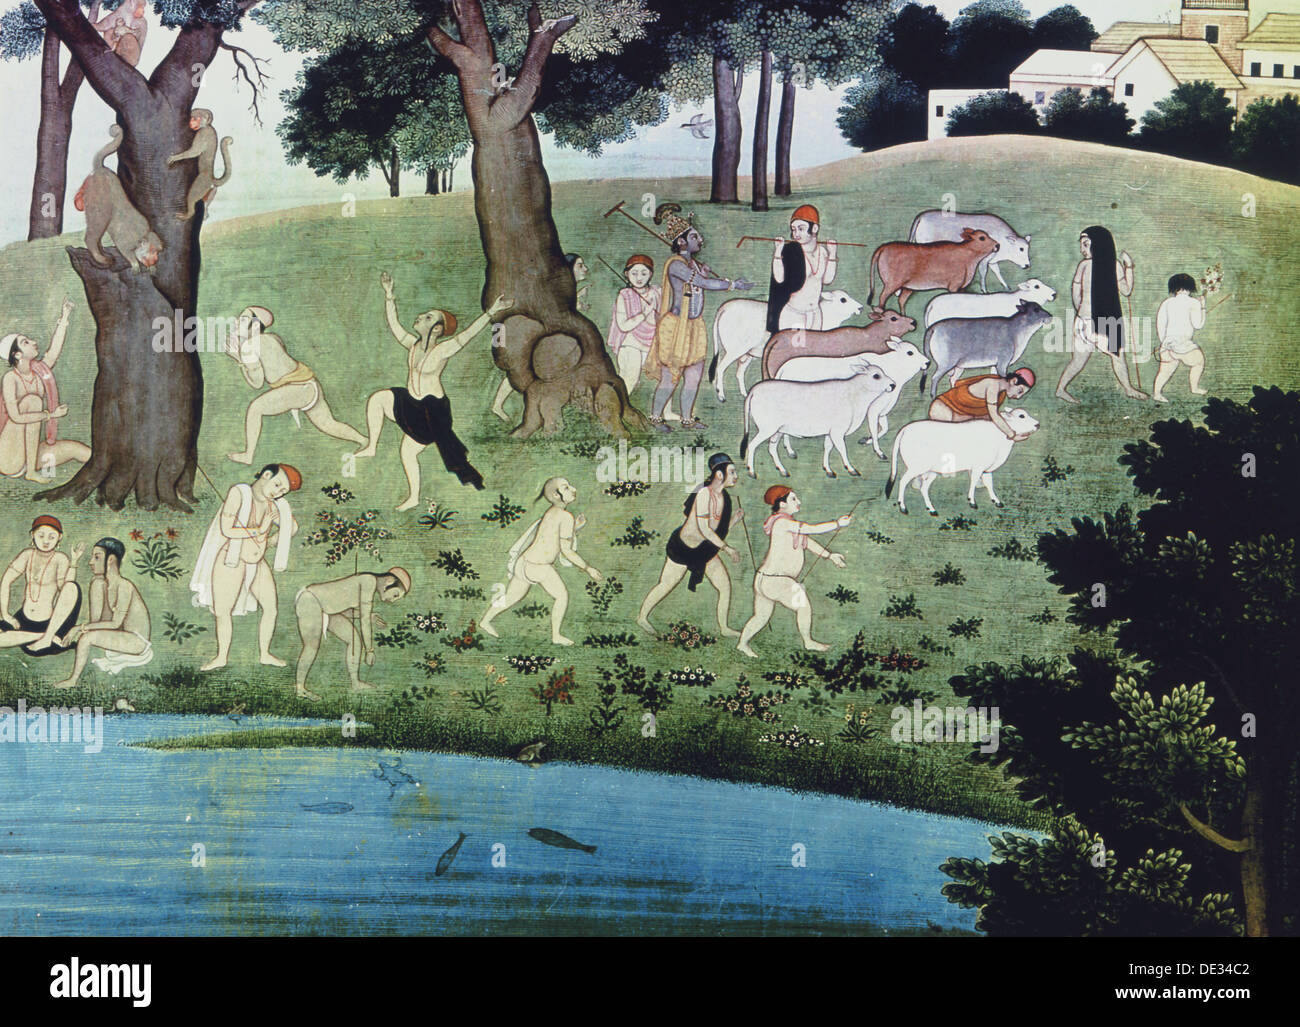 Illustration of an episode from the Bhagavad Purana. - Stock Image